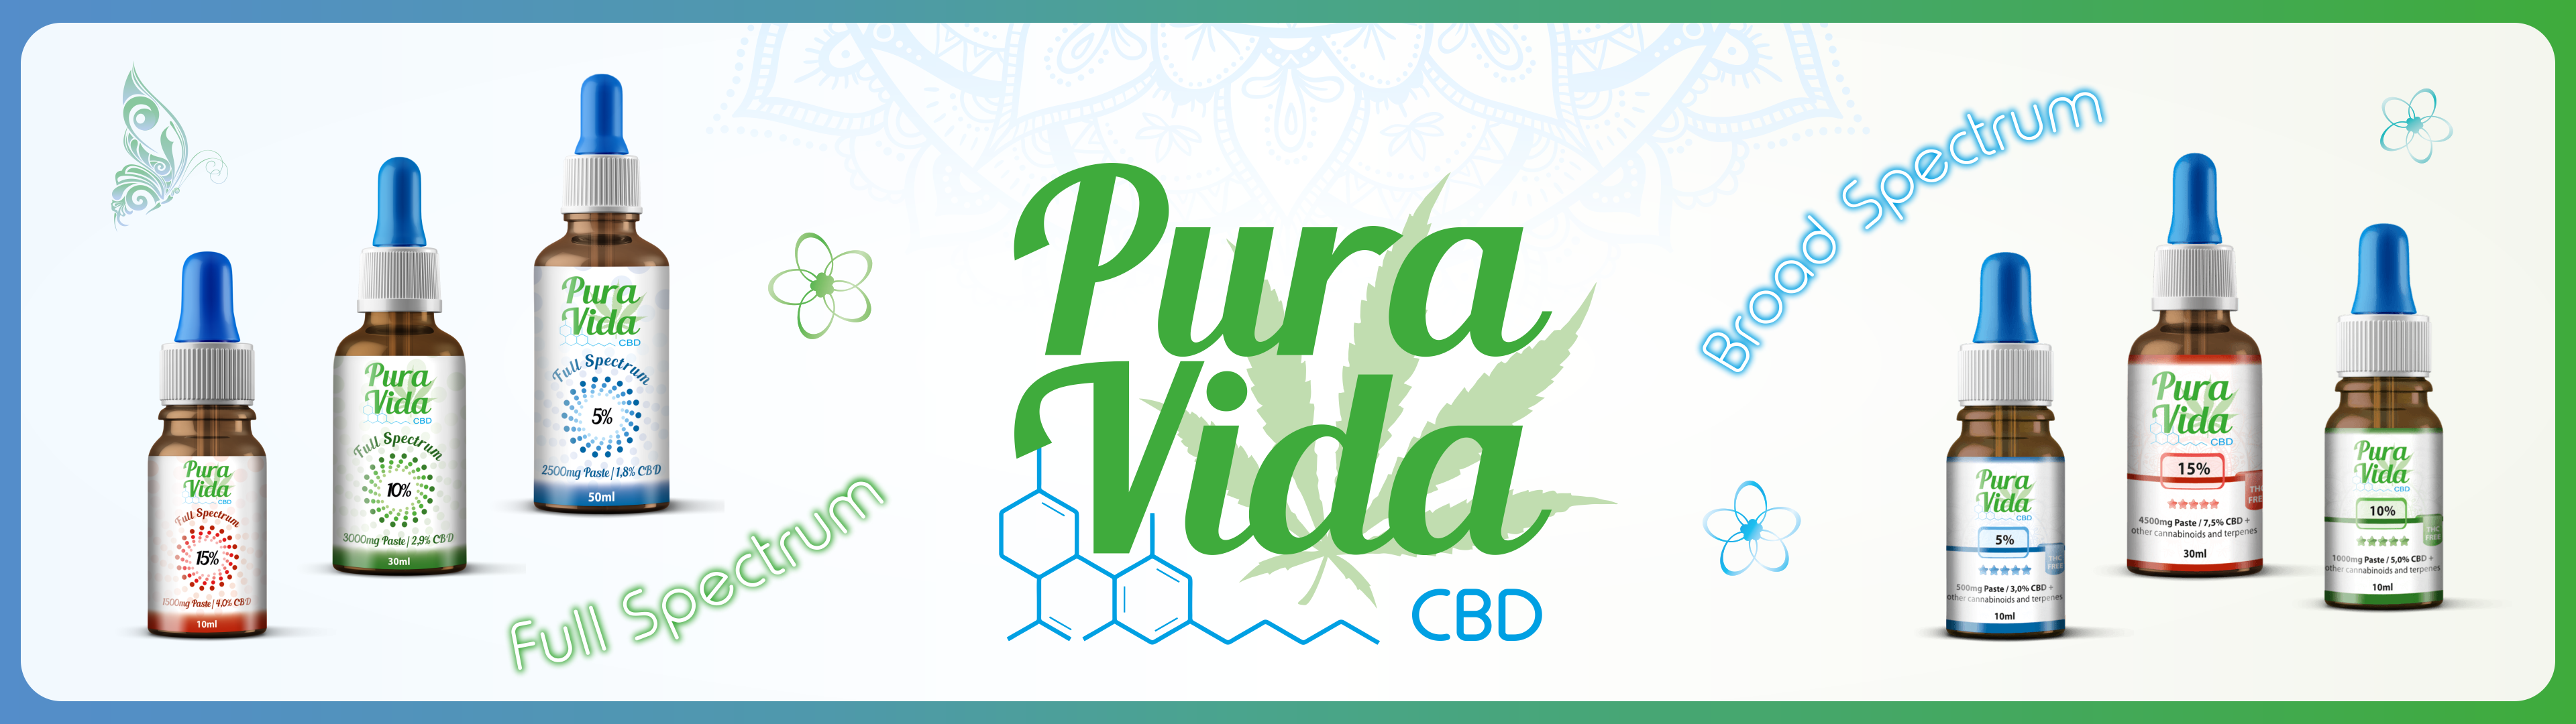 Pura Vida CBD Full Spectrum CBD Oil